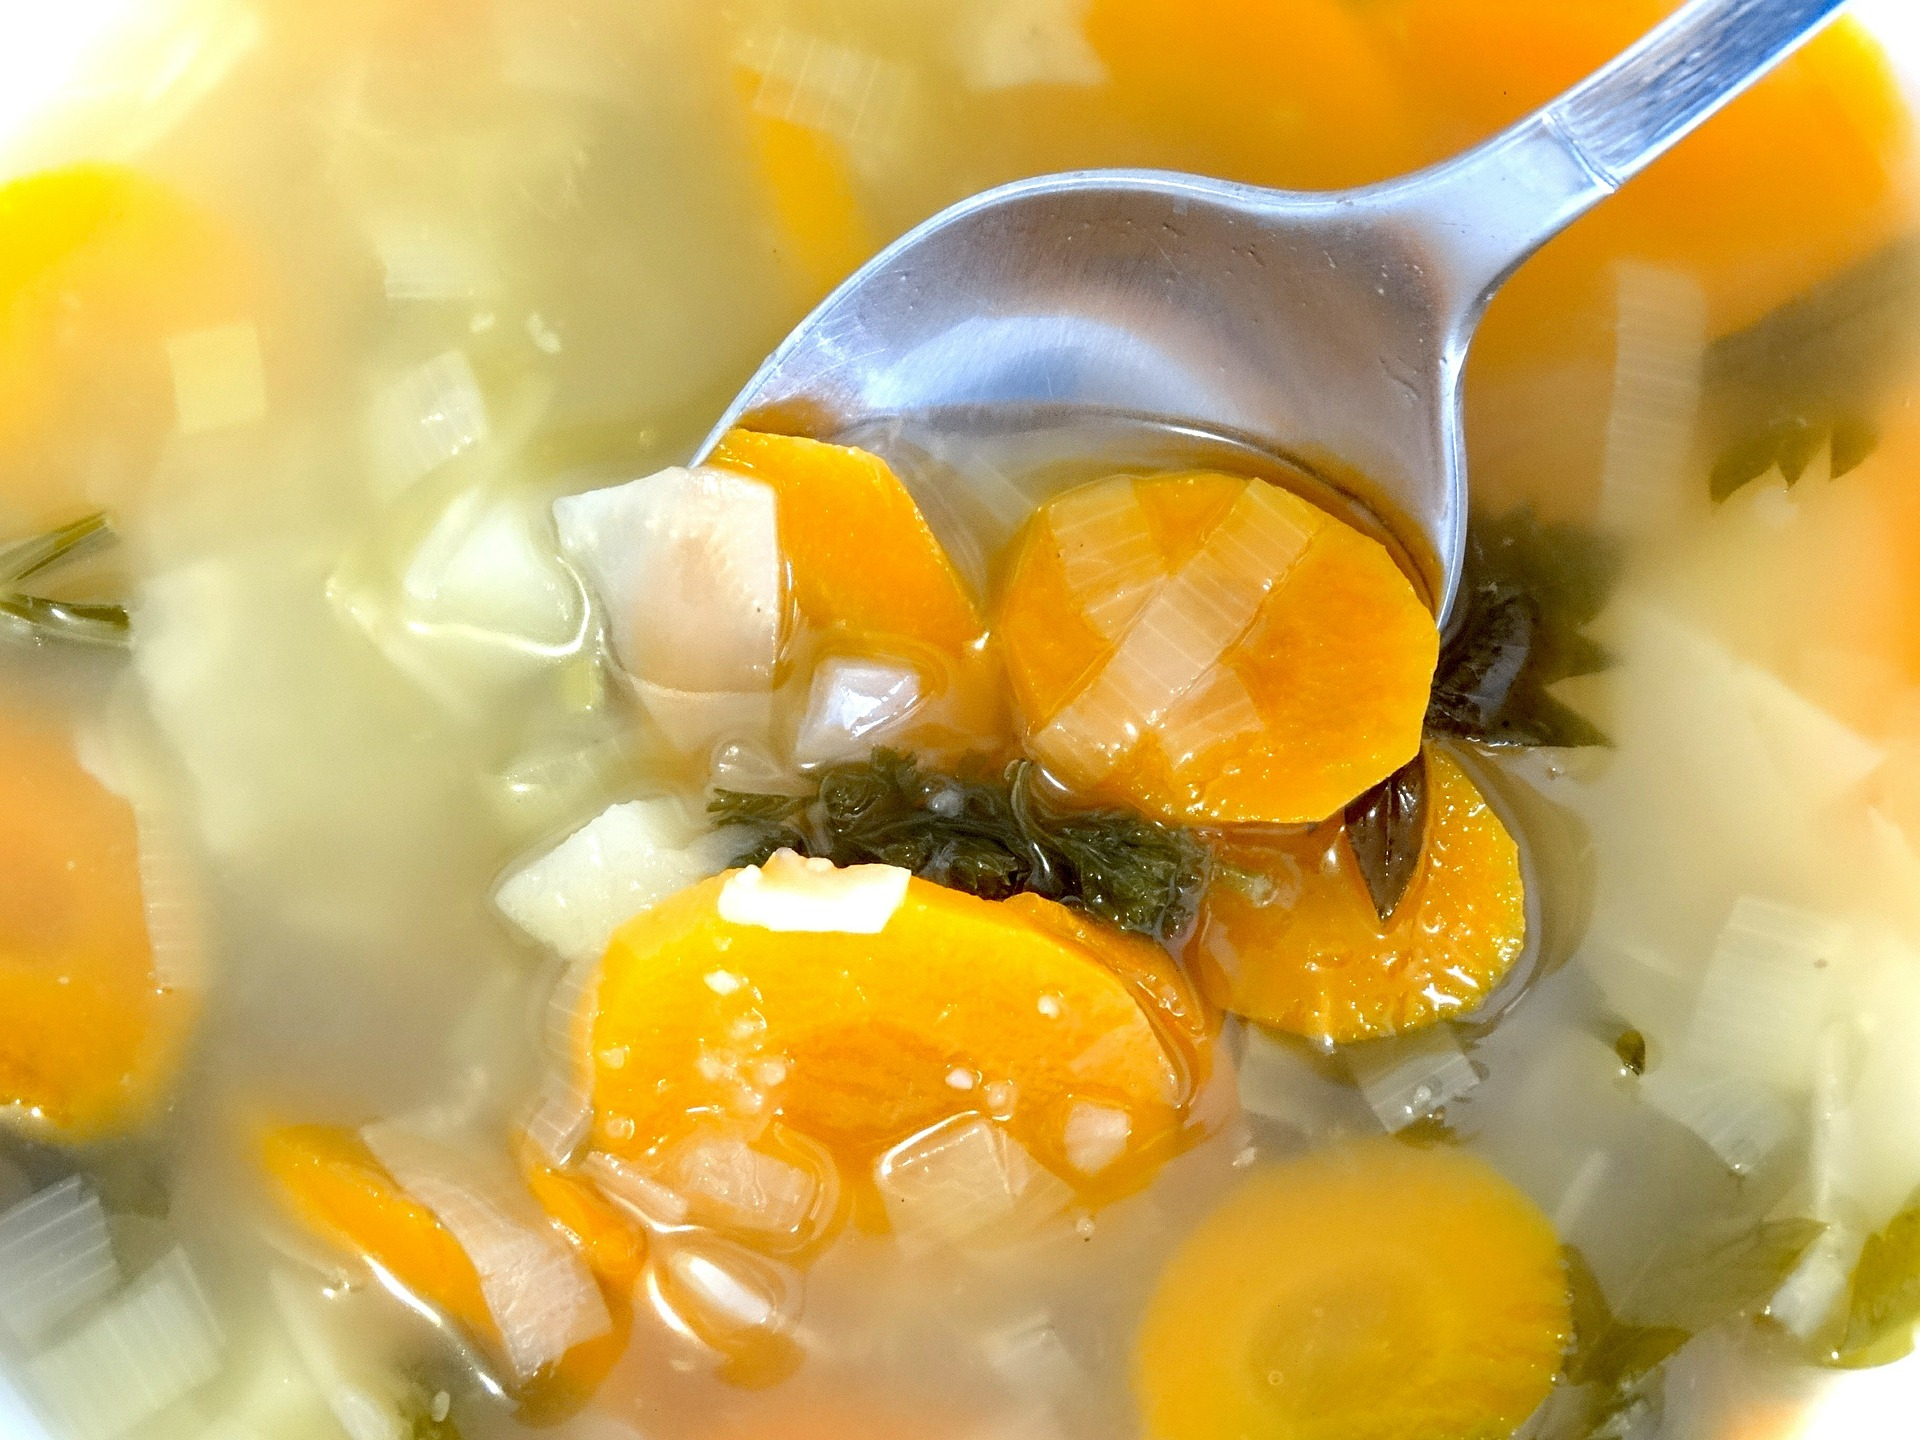 supa de curcan - sfatulparintilor.ro - pixabay_com - vegetable-soup-445160_1920